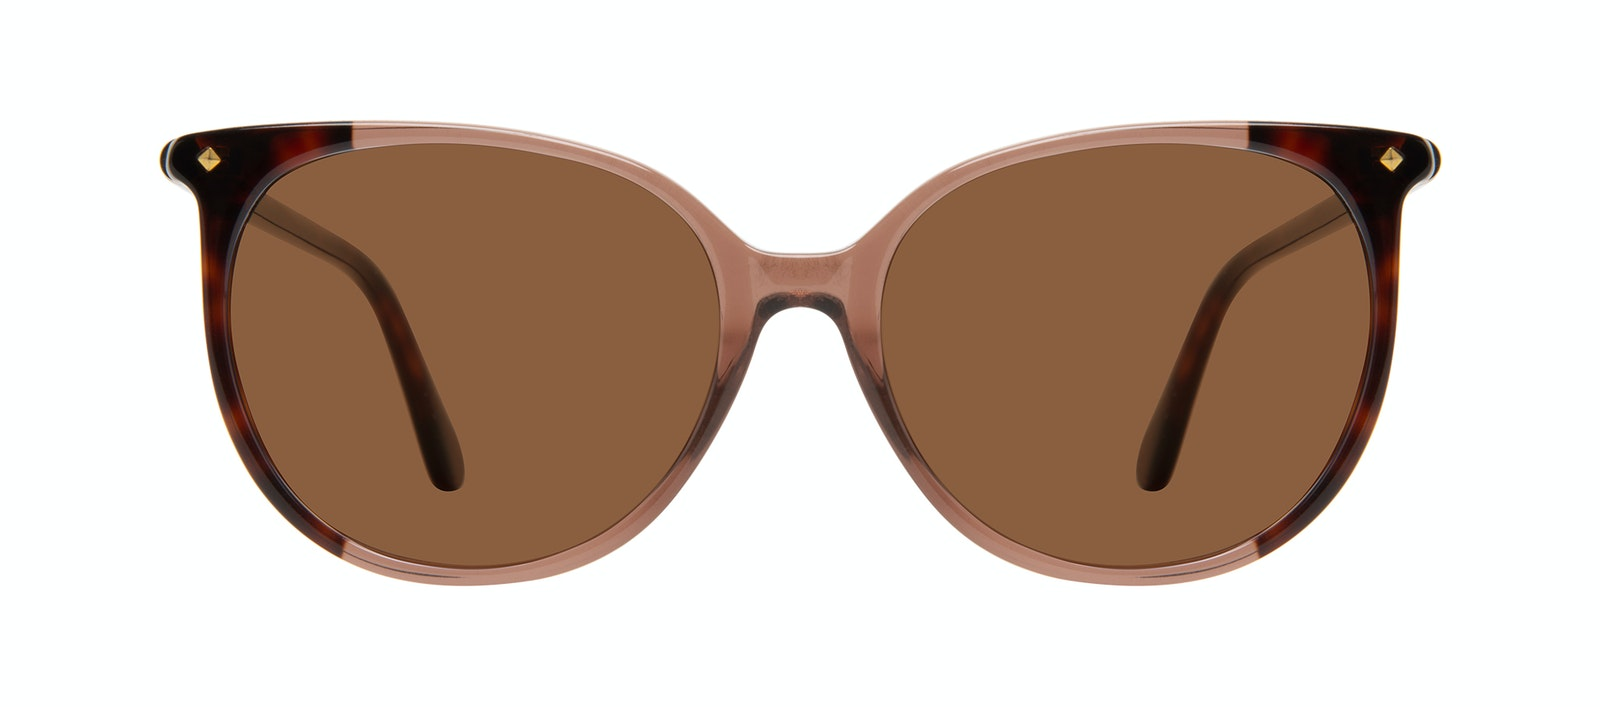 Affordable Fashion Glasses Round Sunglasses Women Area Terra Tort Front